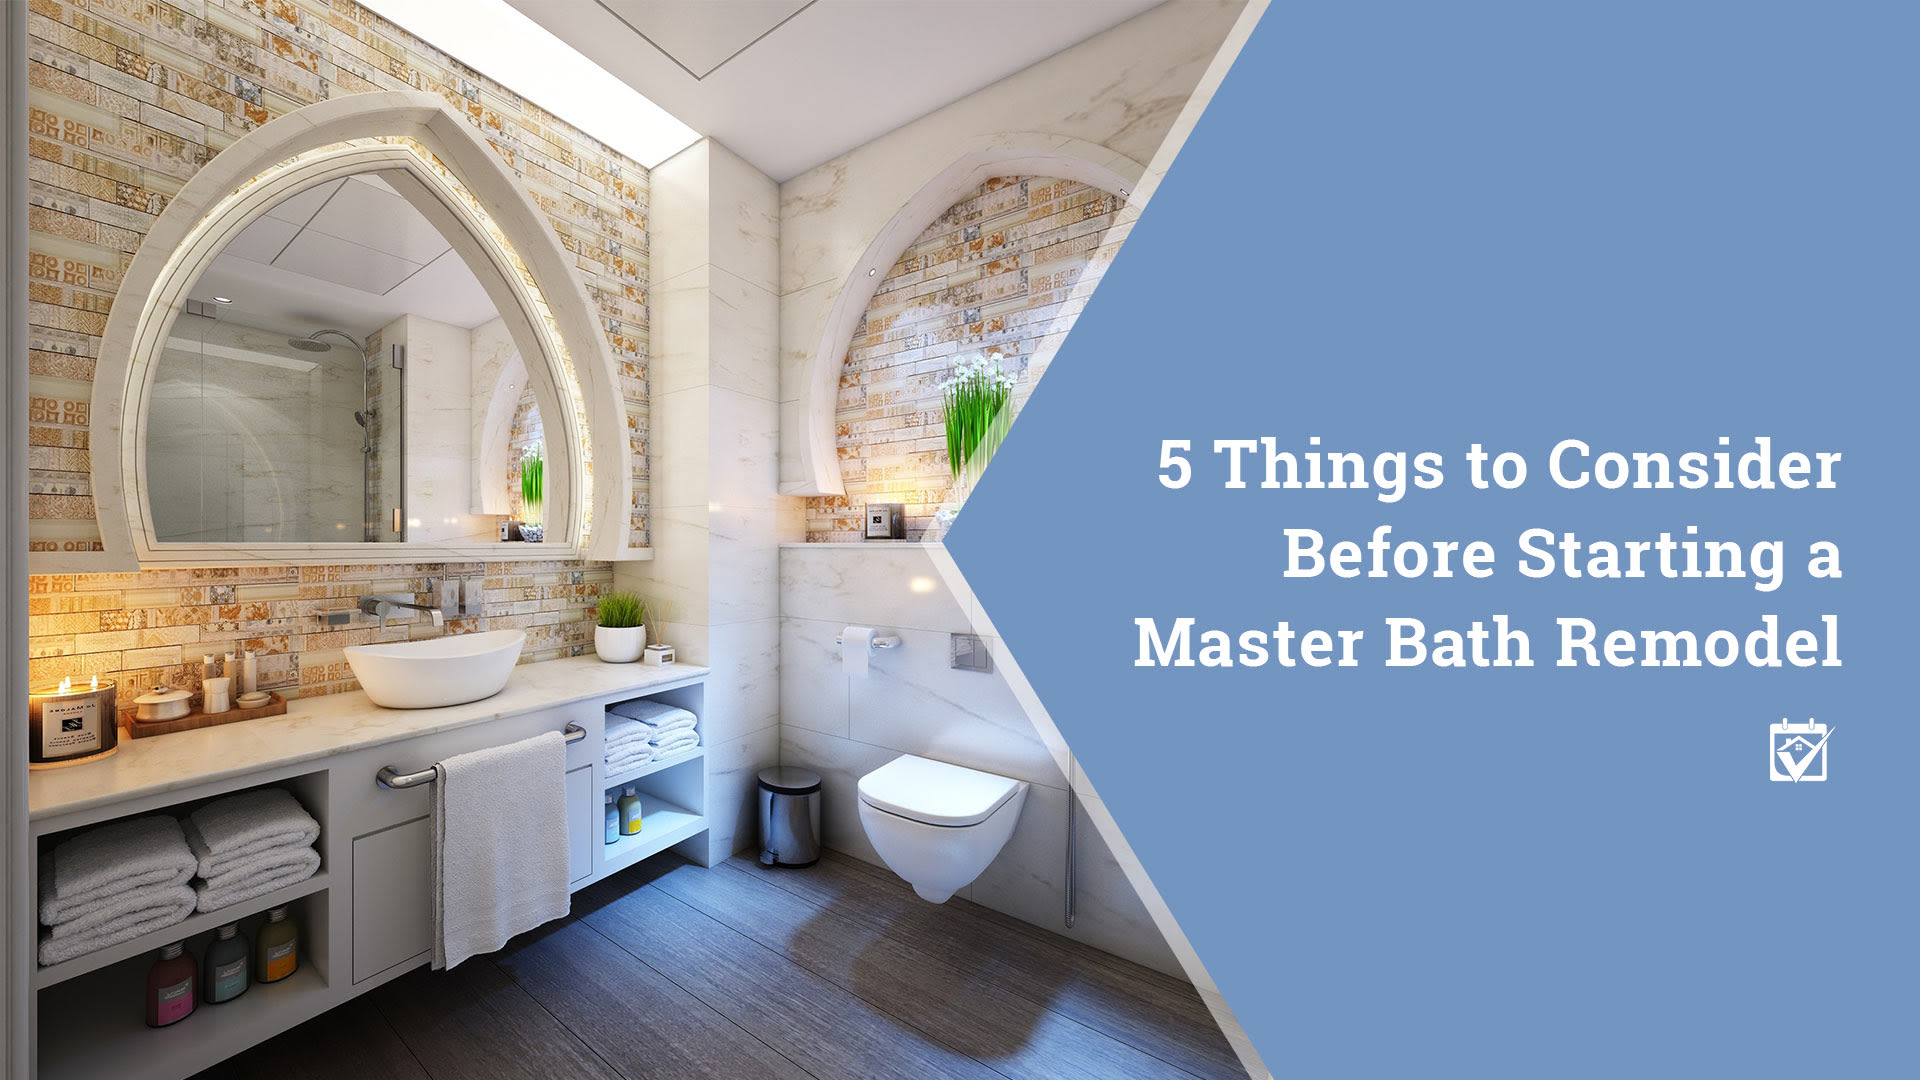 5 Things to Consider Before Doing a Master Bath Remodel